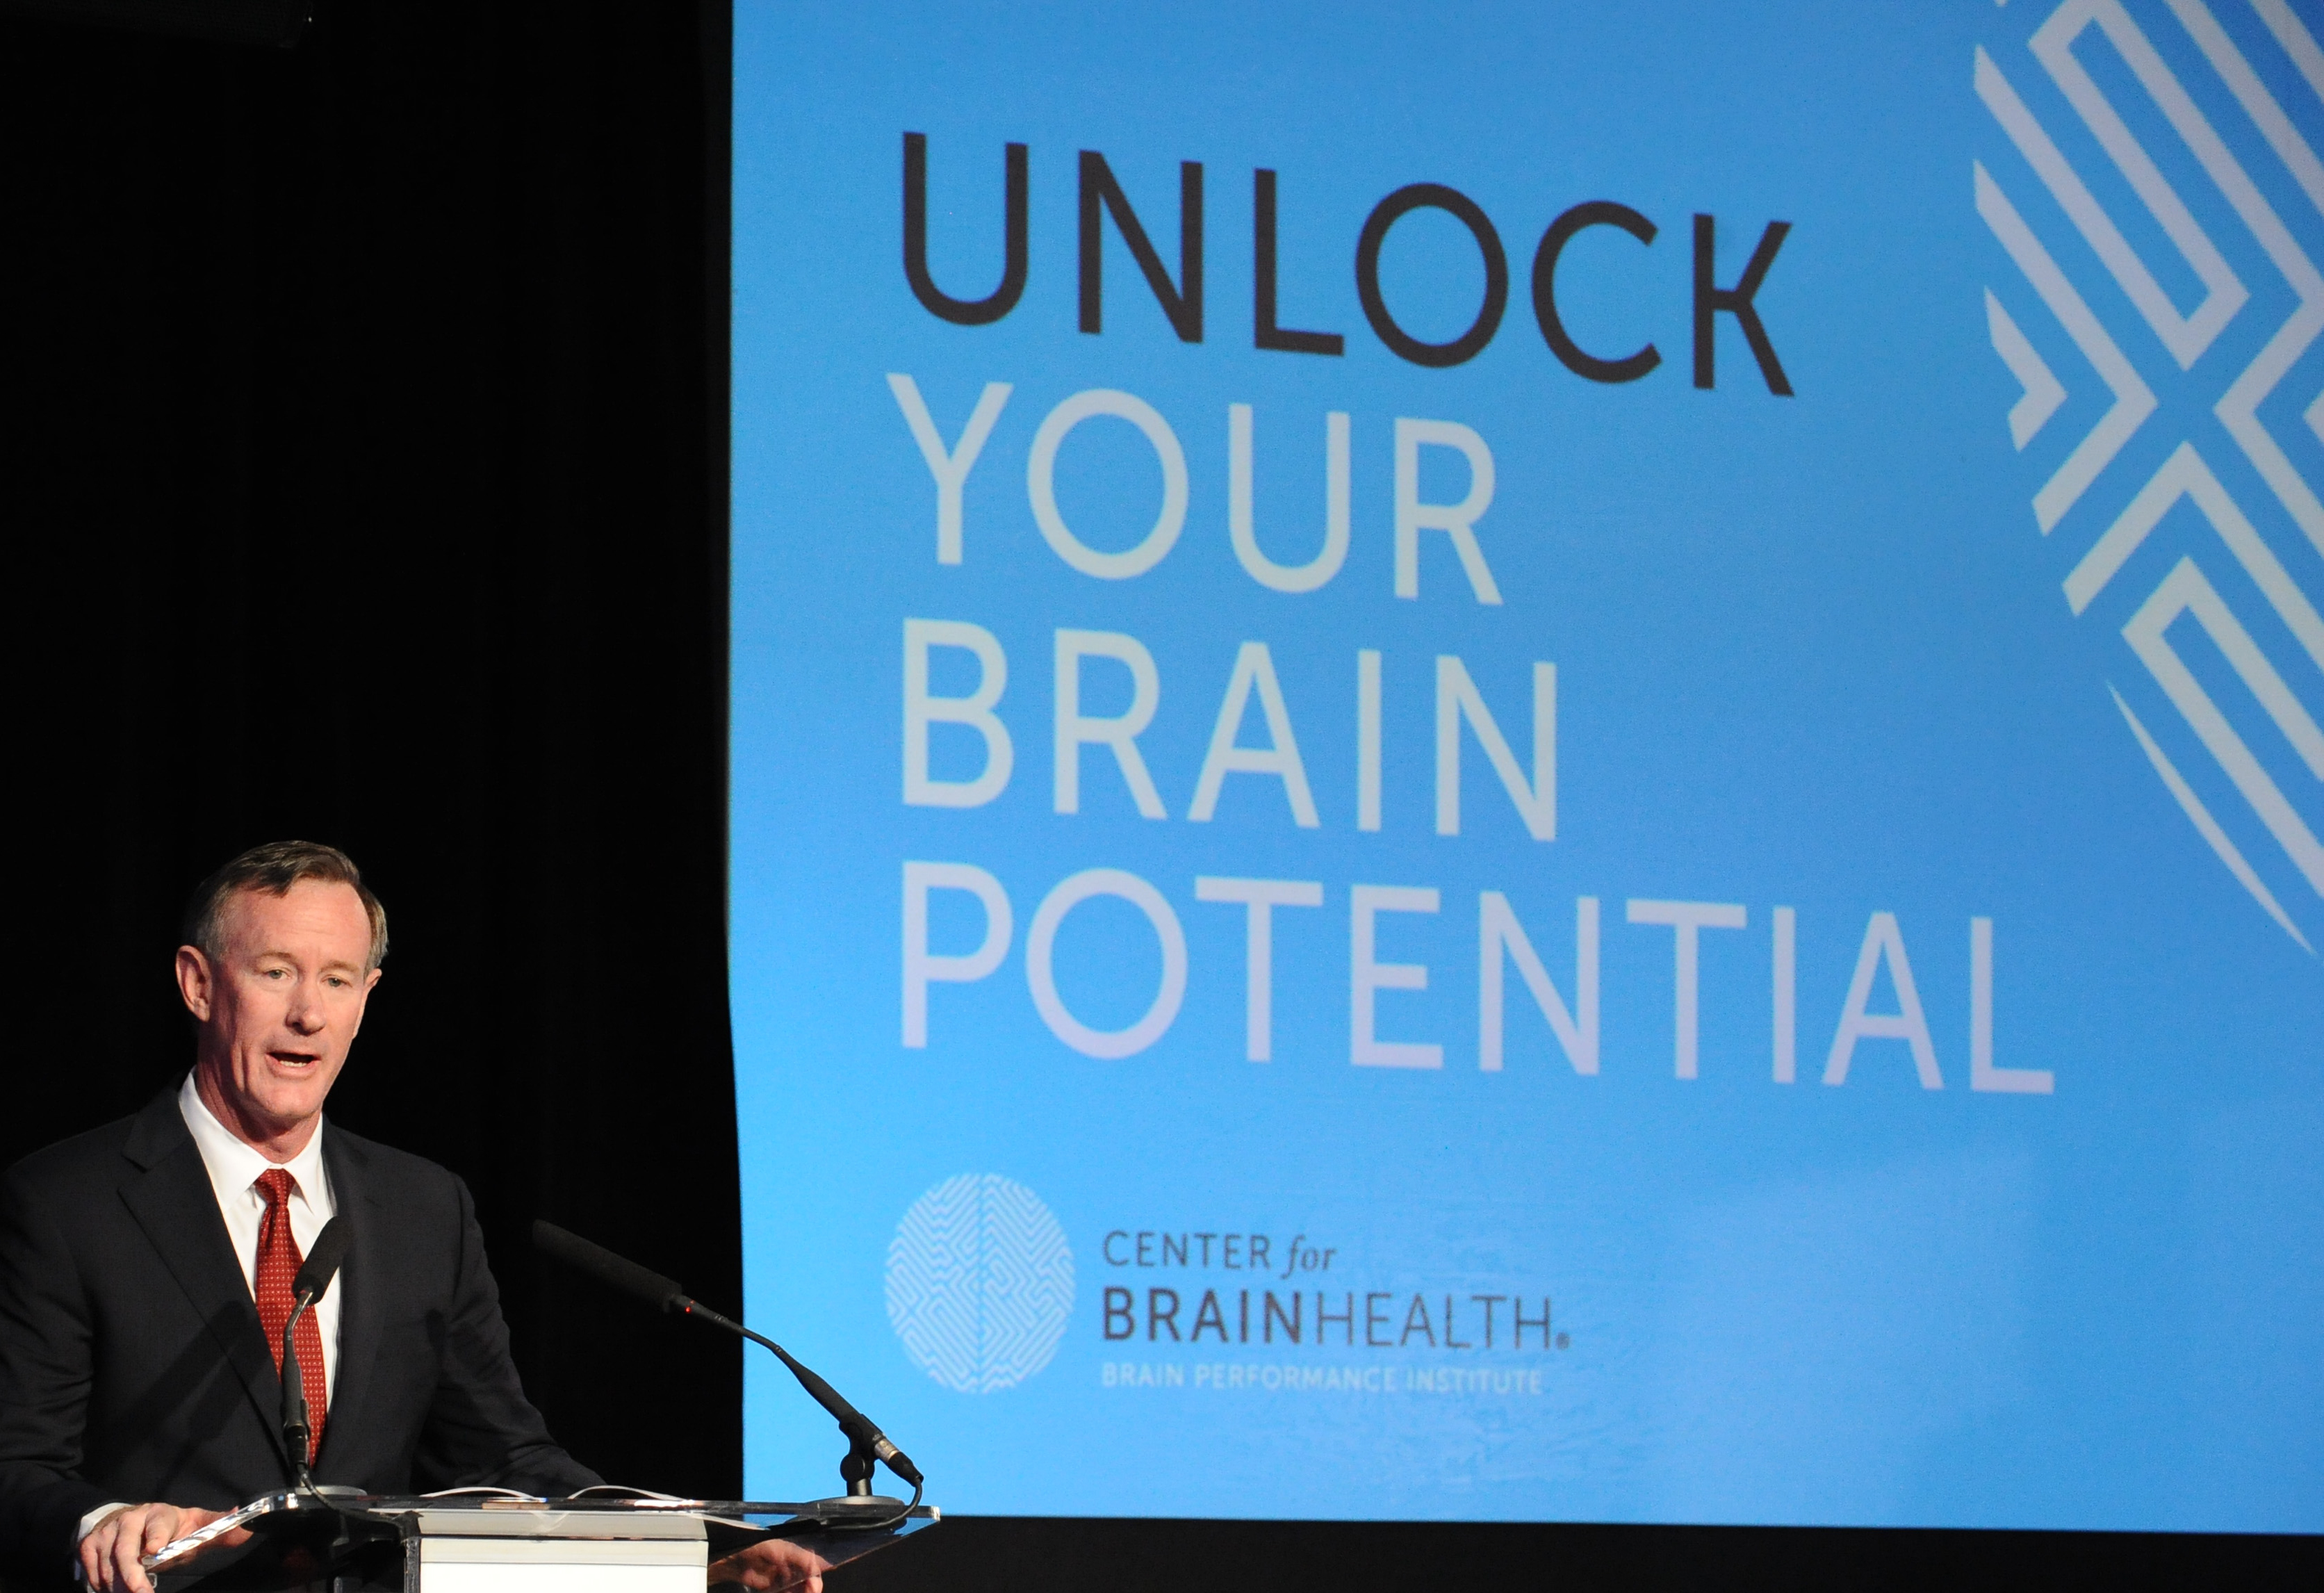 Unlock Brain Potential to Protect Against Decline